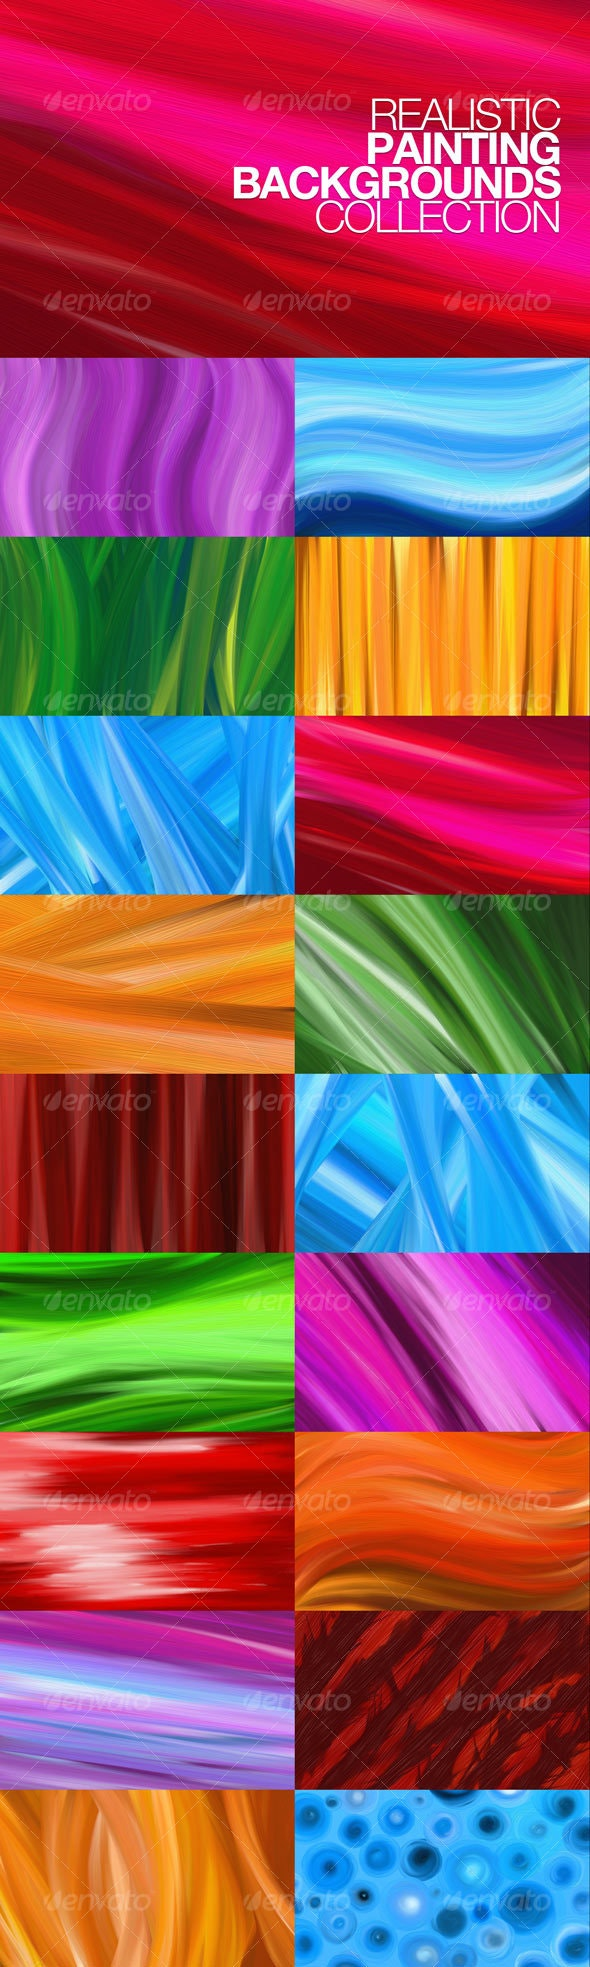 Realistic painting background collection   - Abstract Backgrounds